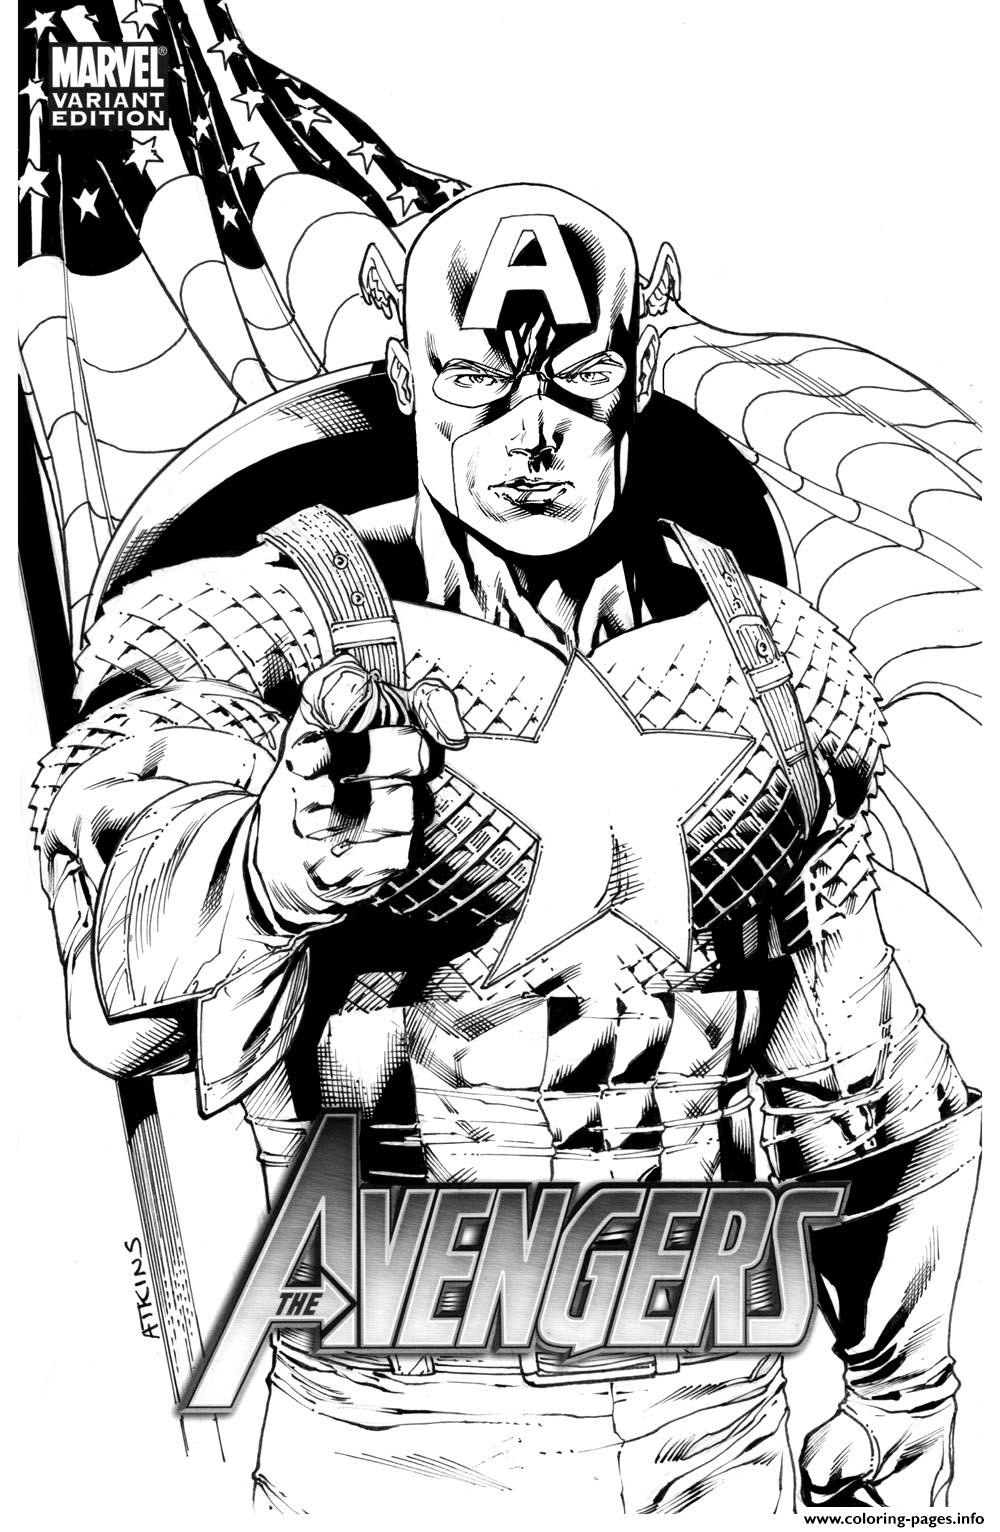 Avengers Captain America 274 coloring pages